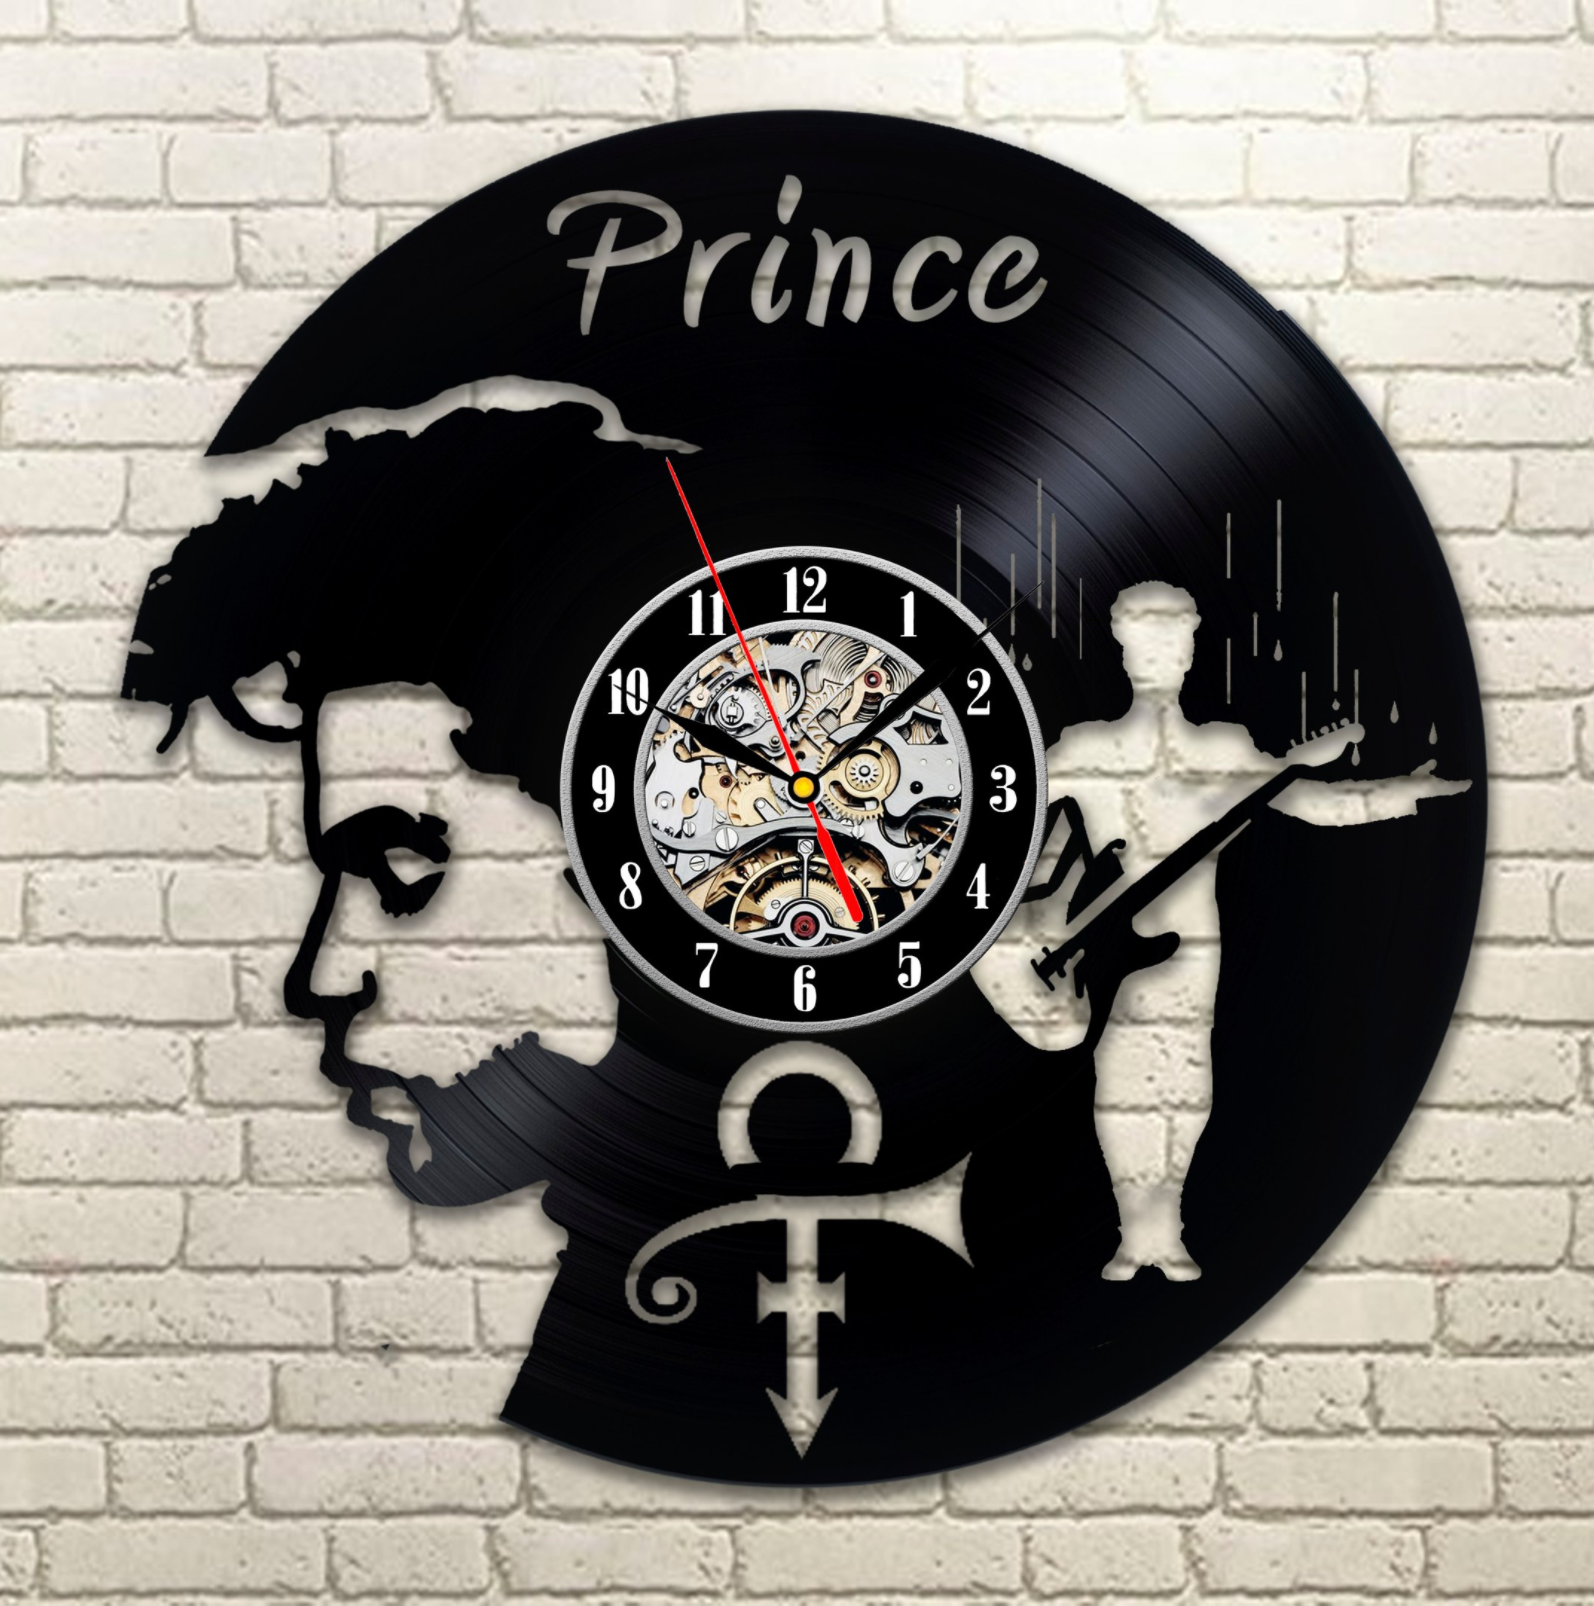 Unique Wall Clocks Cheap Prince Vinyl Record Clock I Want This Soooo Bad For